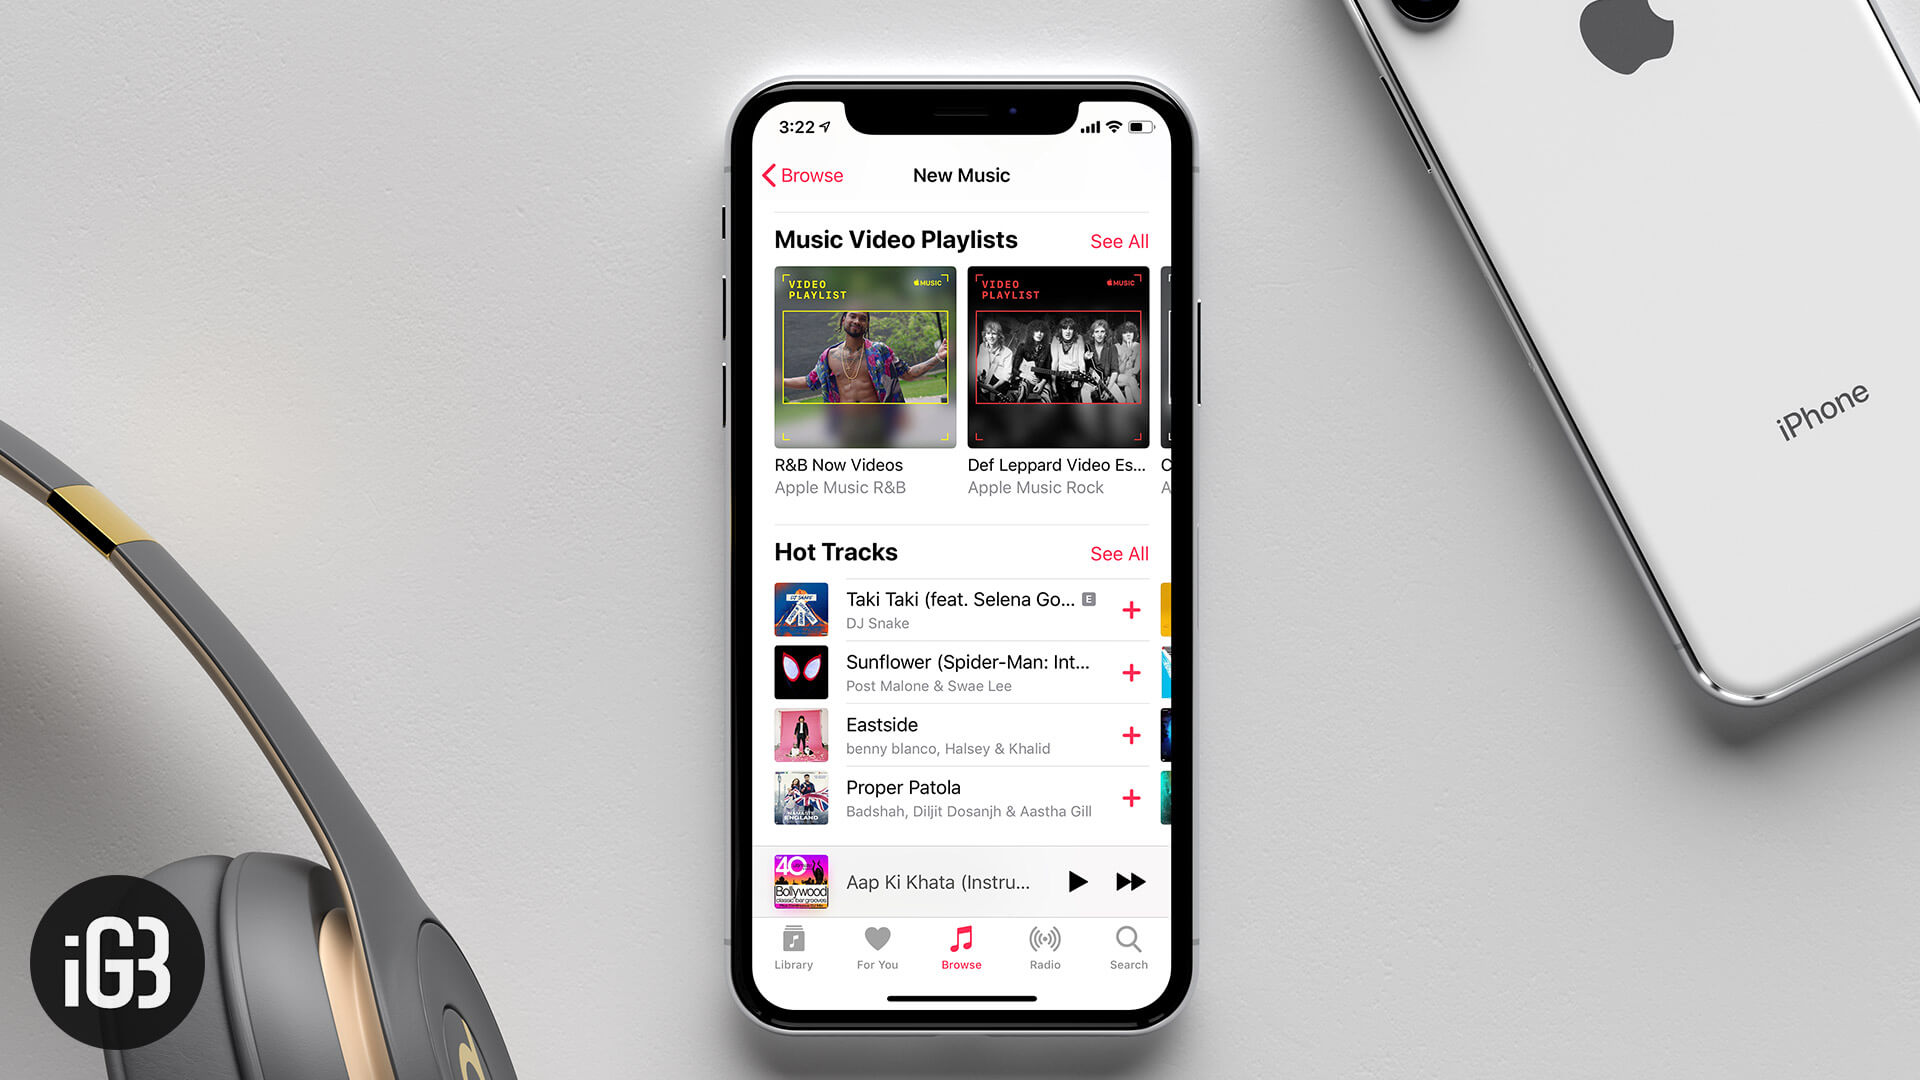 How to Turn OFF iCloud Music Library in iOS 13 and iPadOS